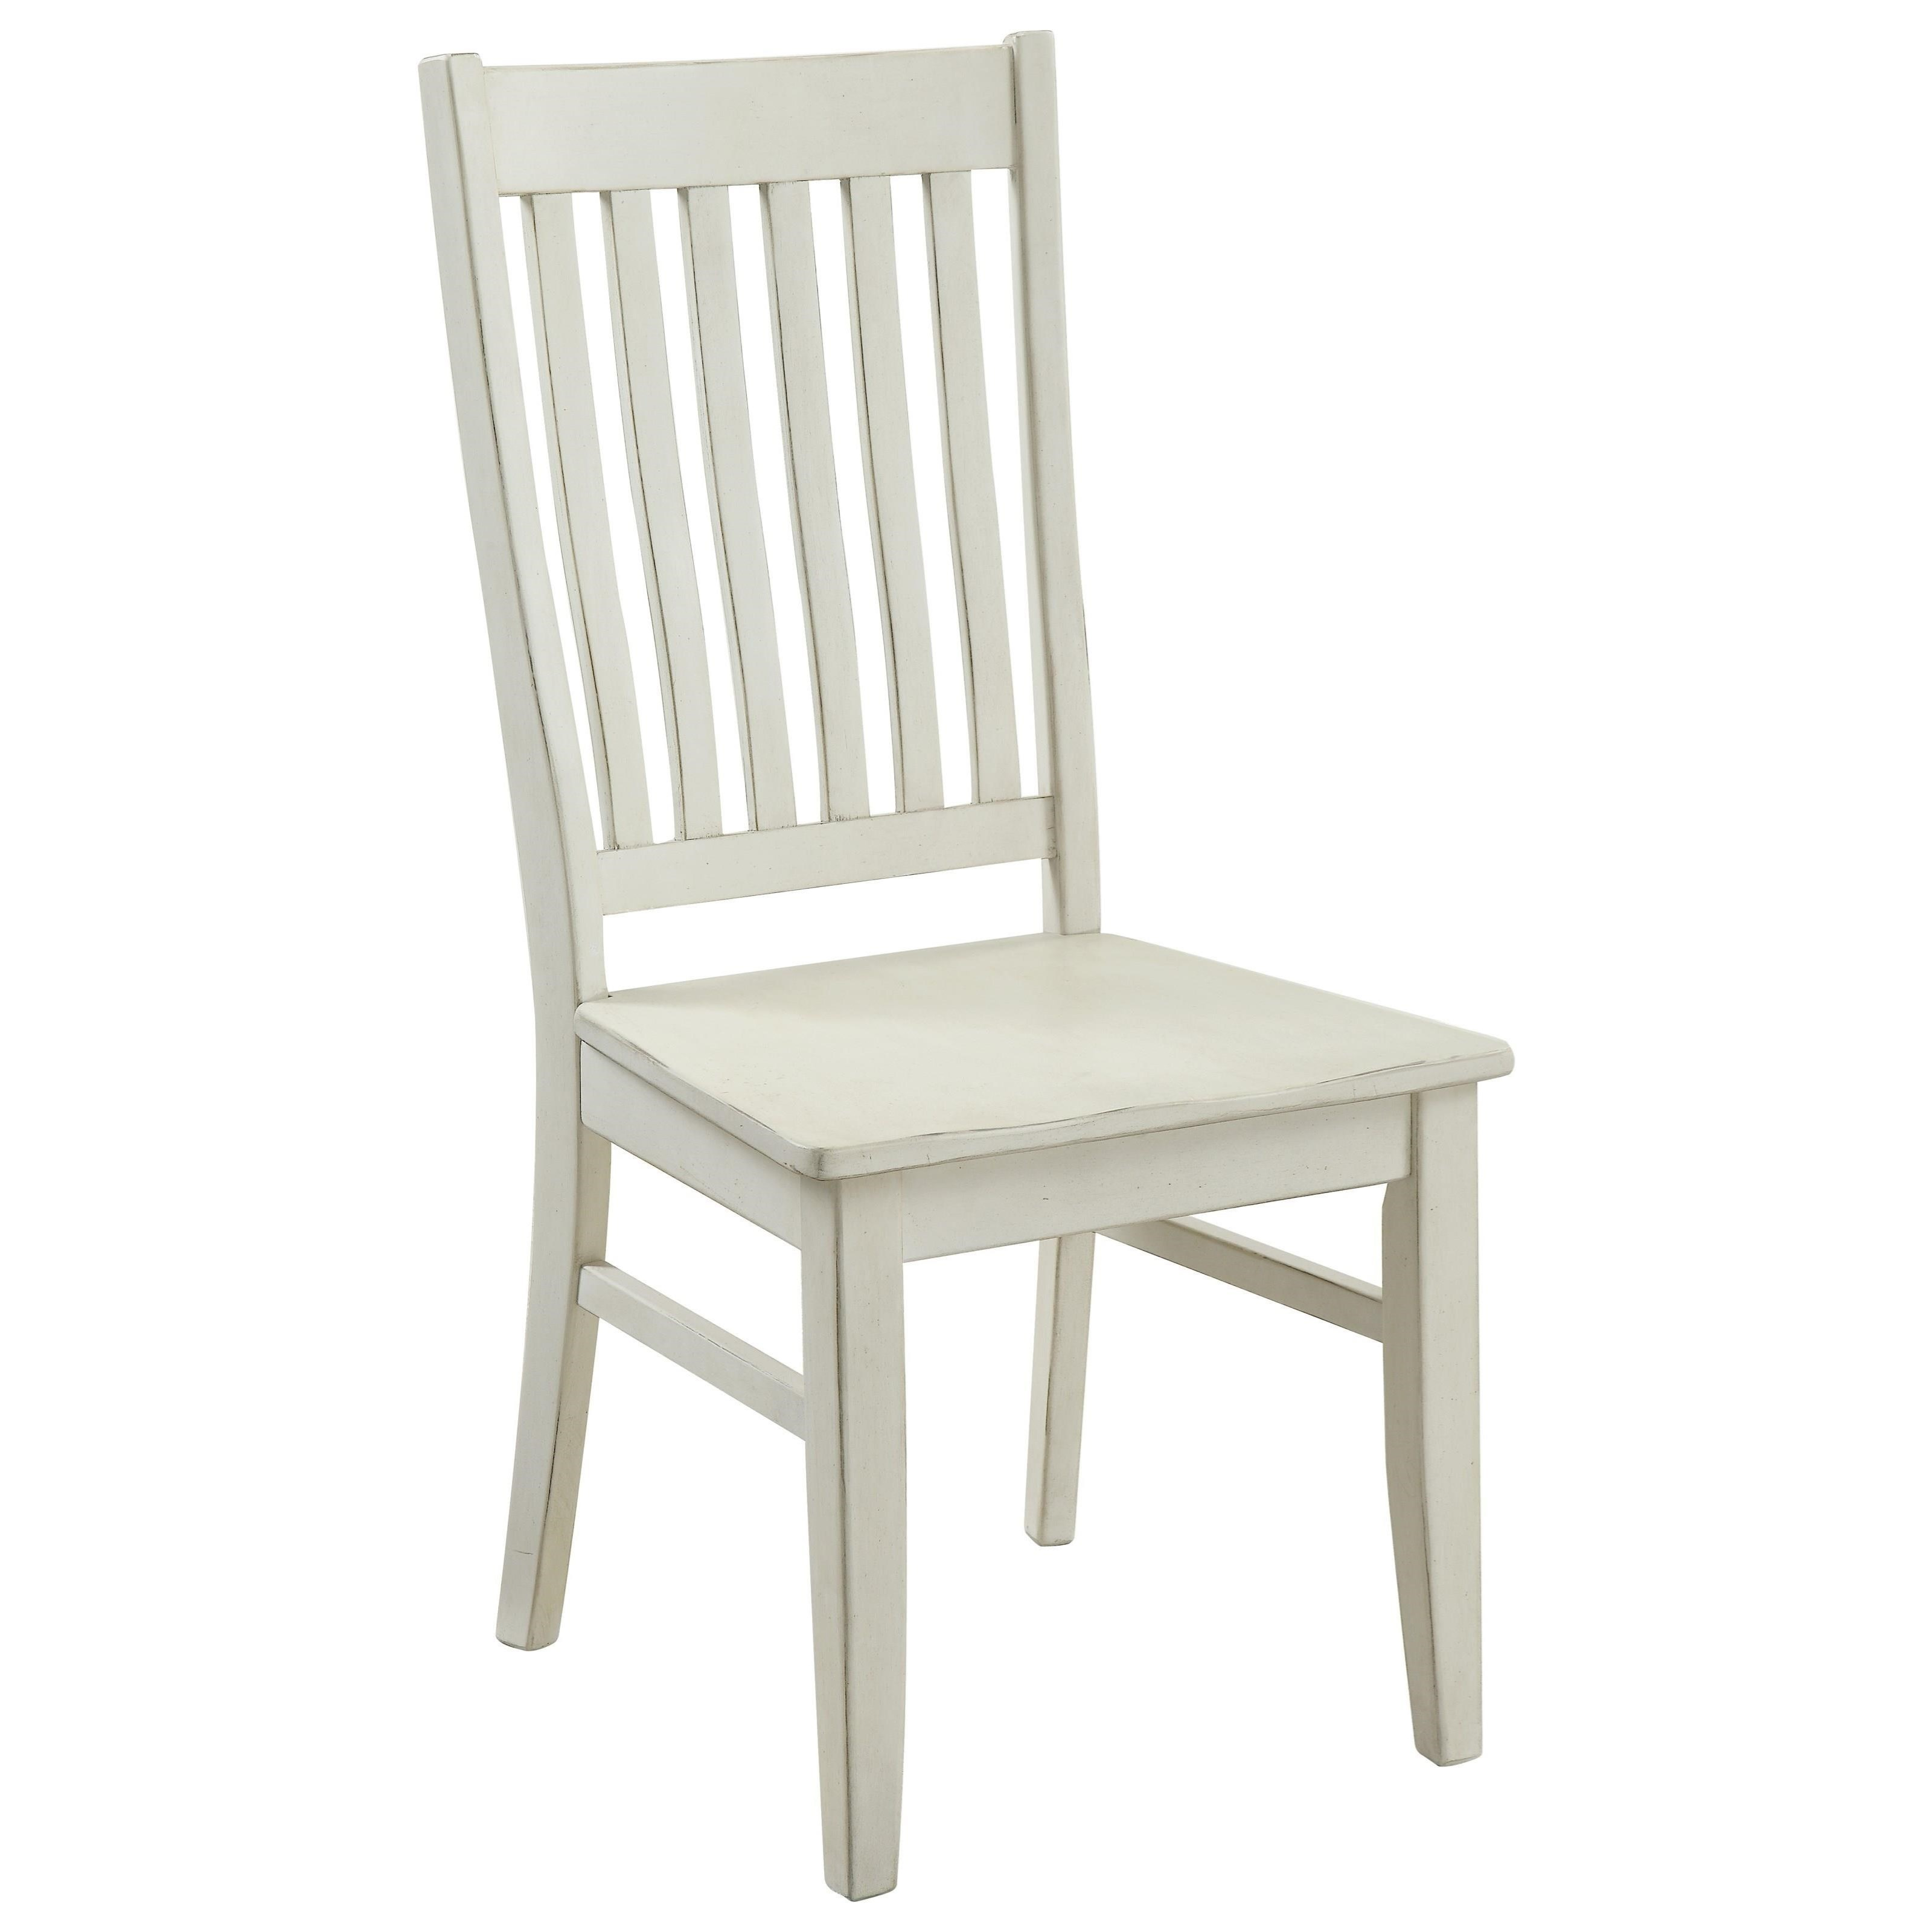 Charming Coast To Coast Imports Orchard Park Orchard Park Dining Chair | Adcock  Furniture | Dining Side Chairs